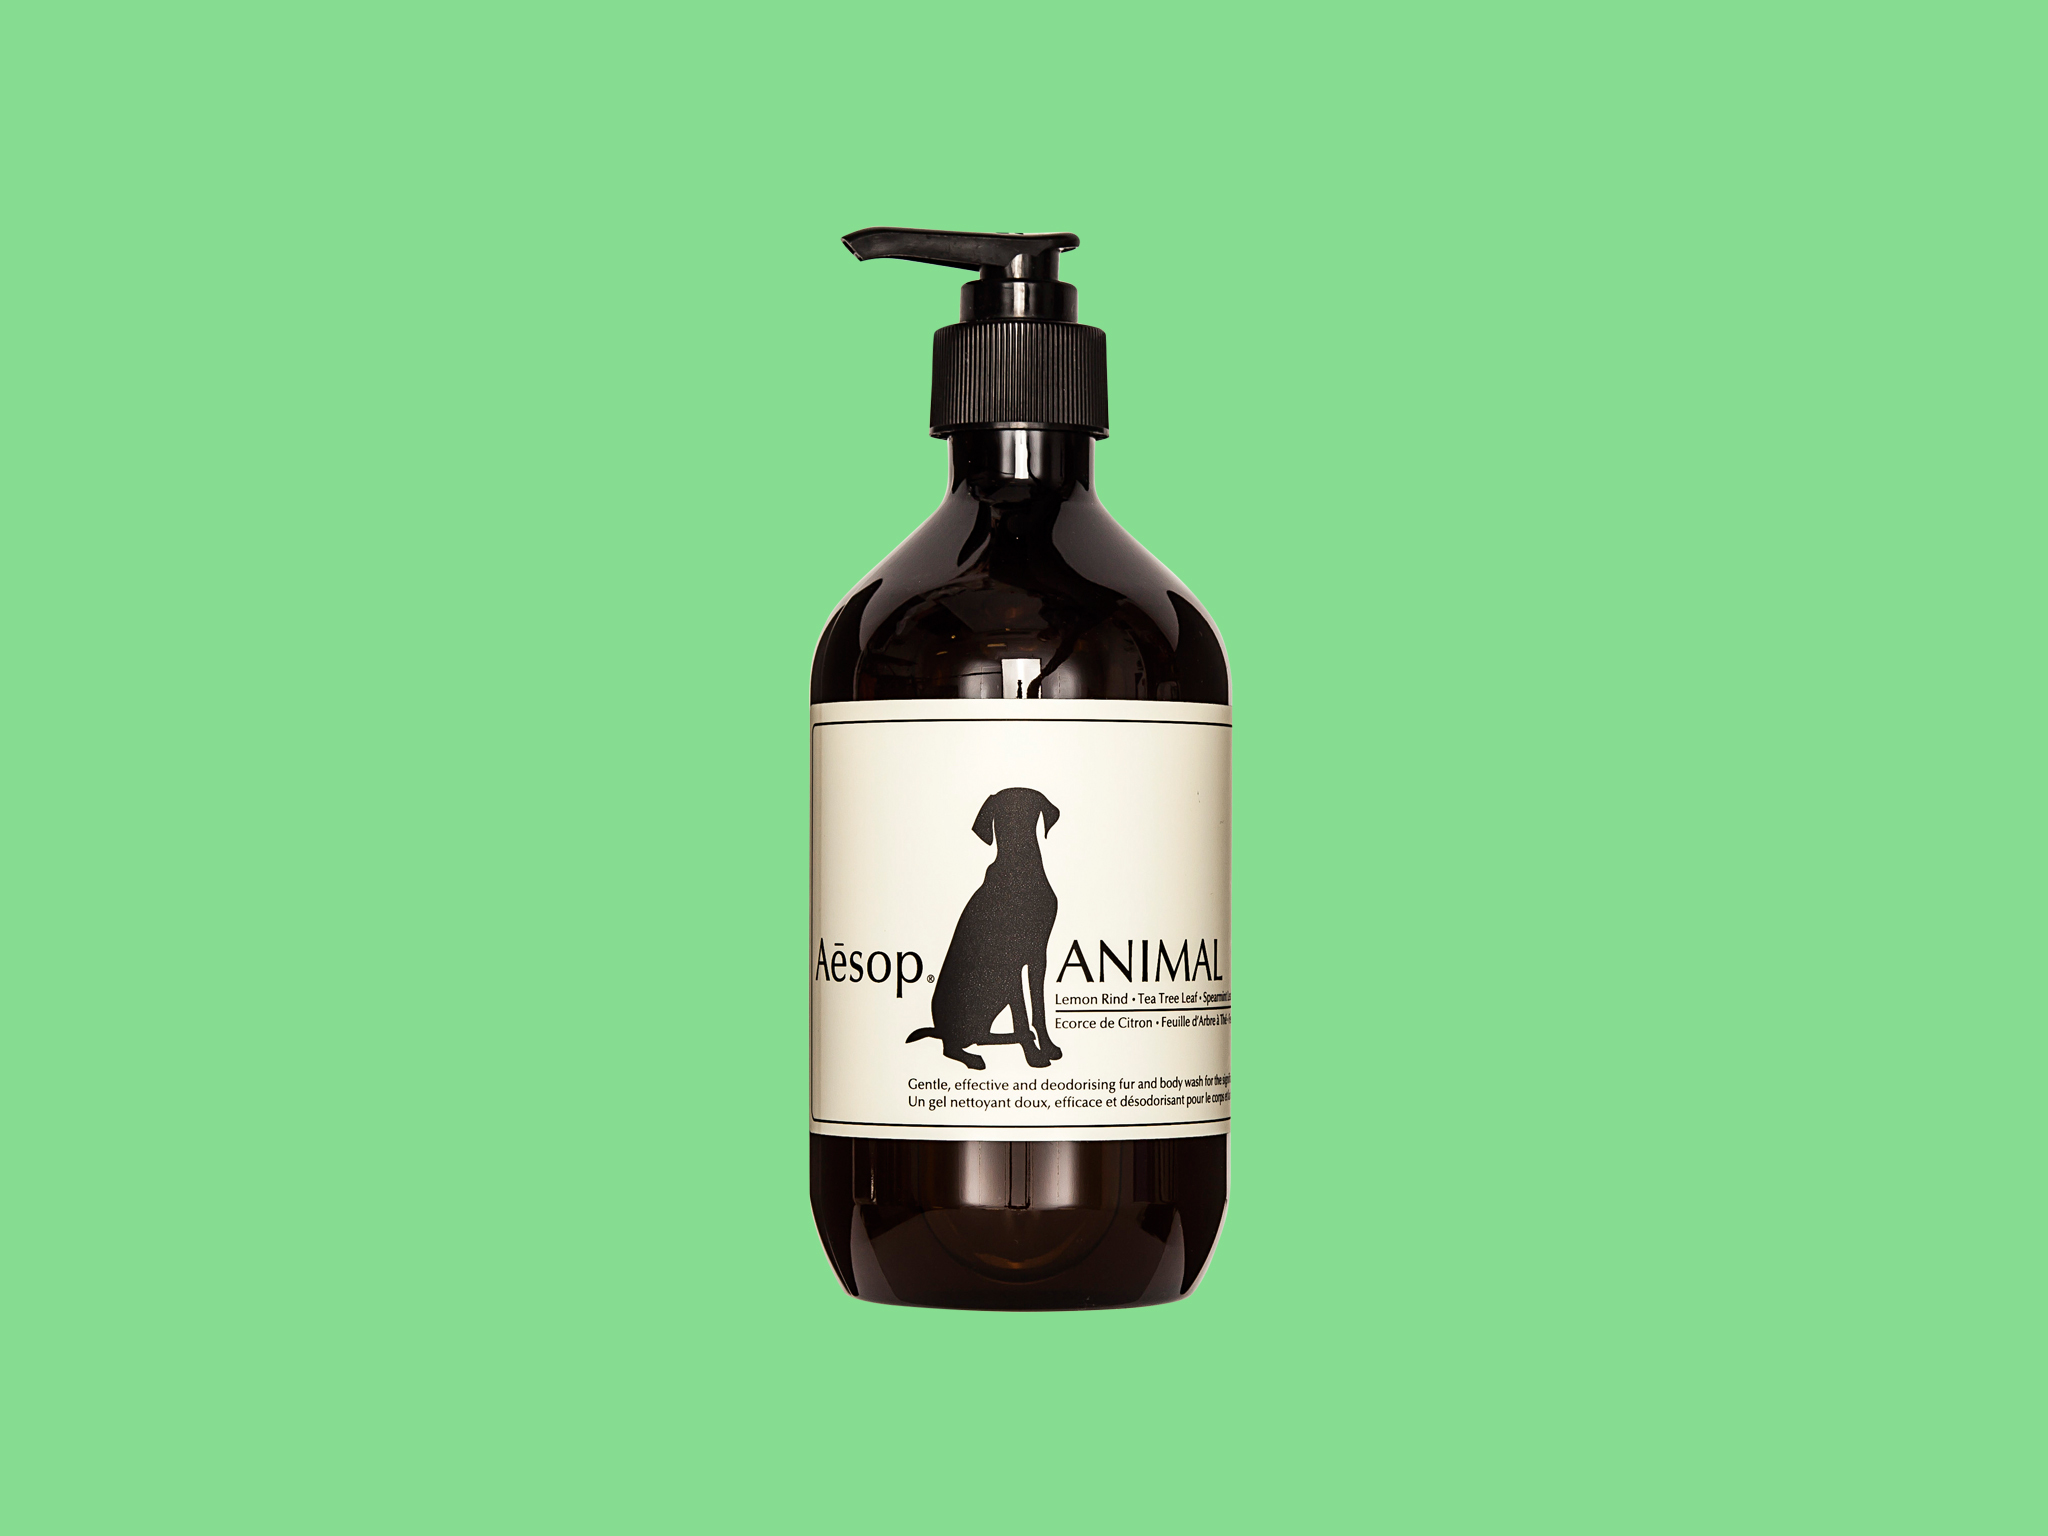 Aesop animal cleanser